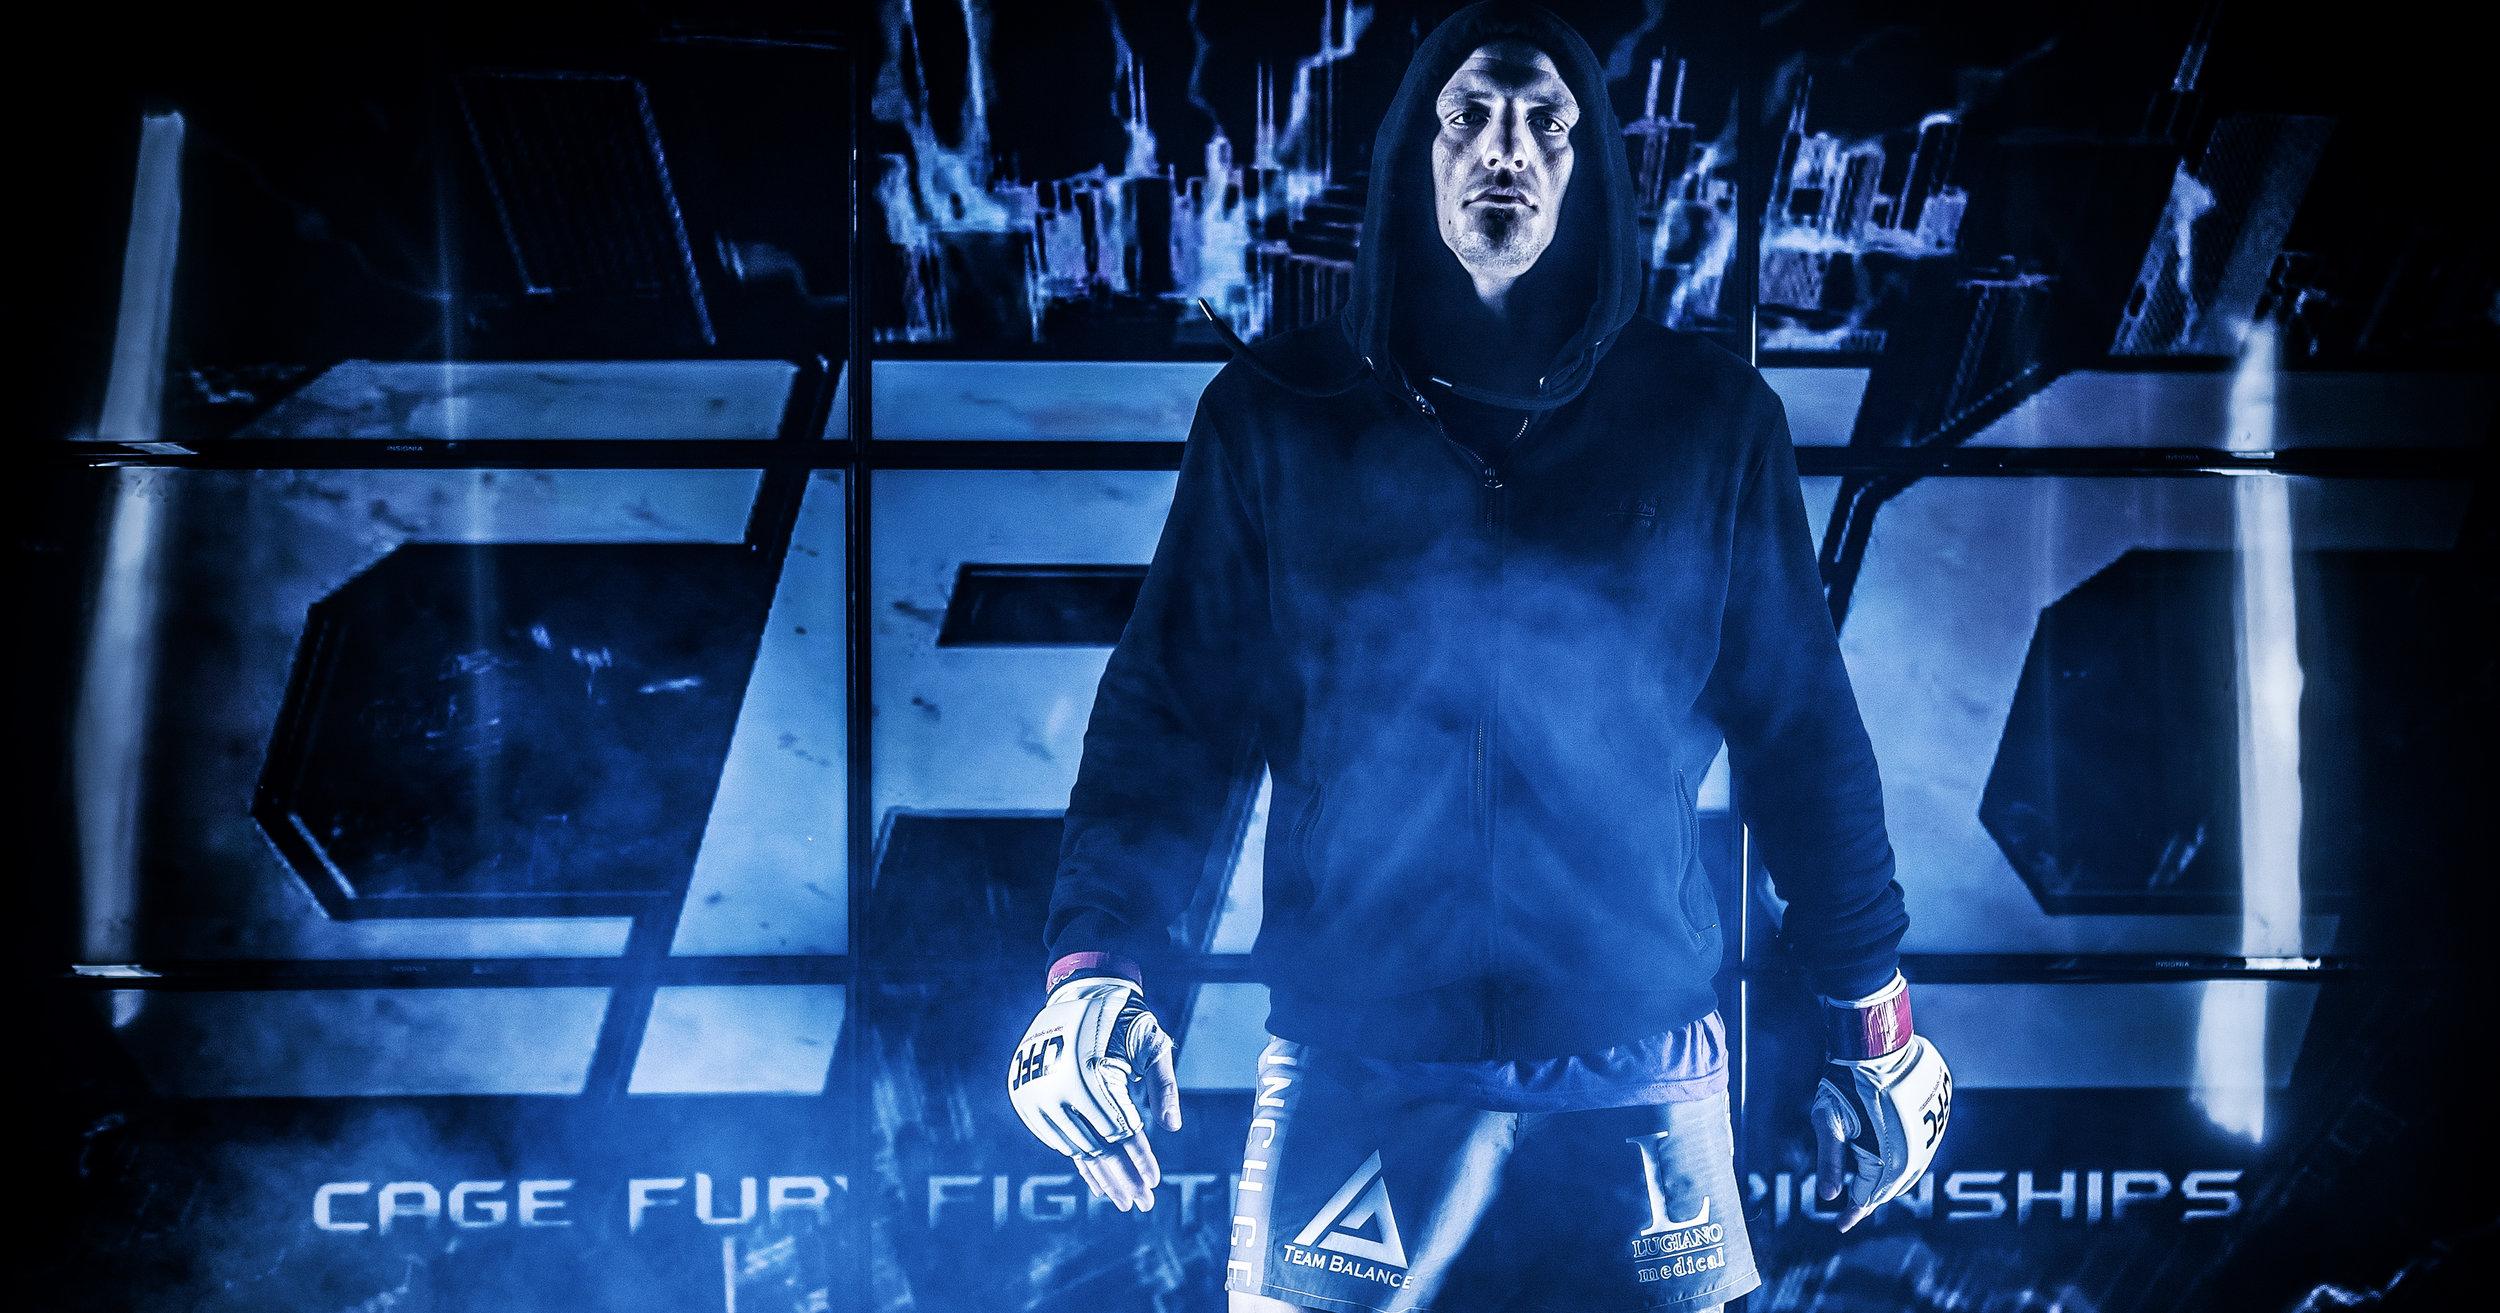 Anton Berzin makes his way to the cage ahead of a bout at Cage Fury Fighting Championships